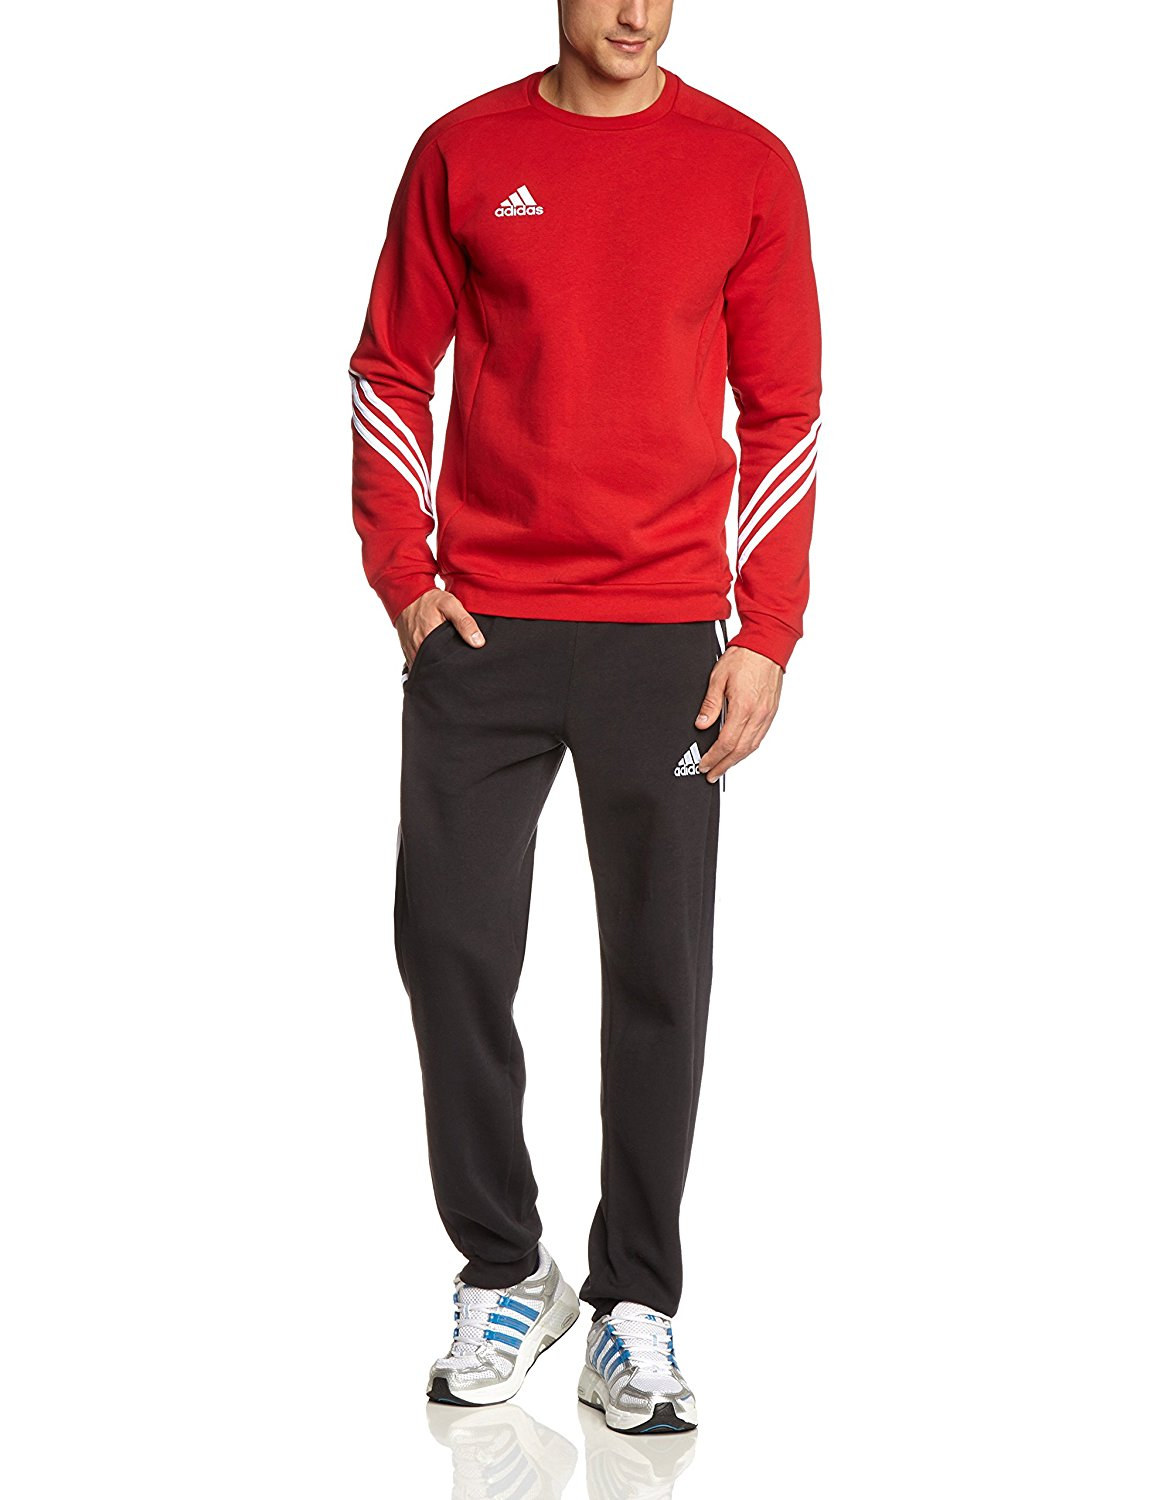 chandal adidas hombre